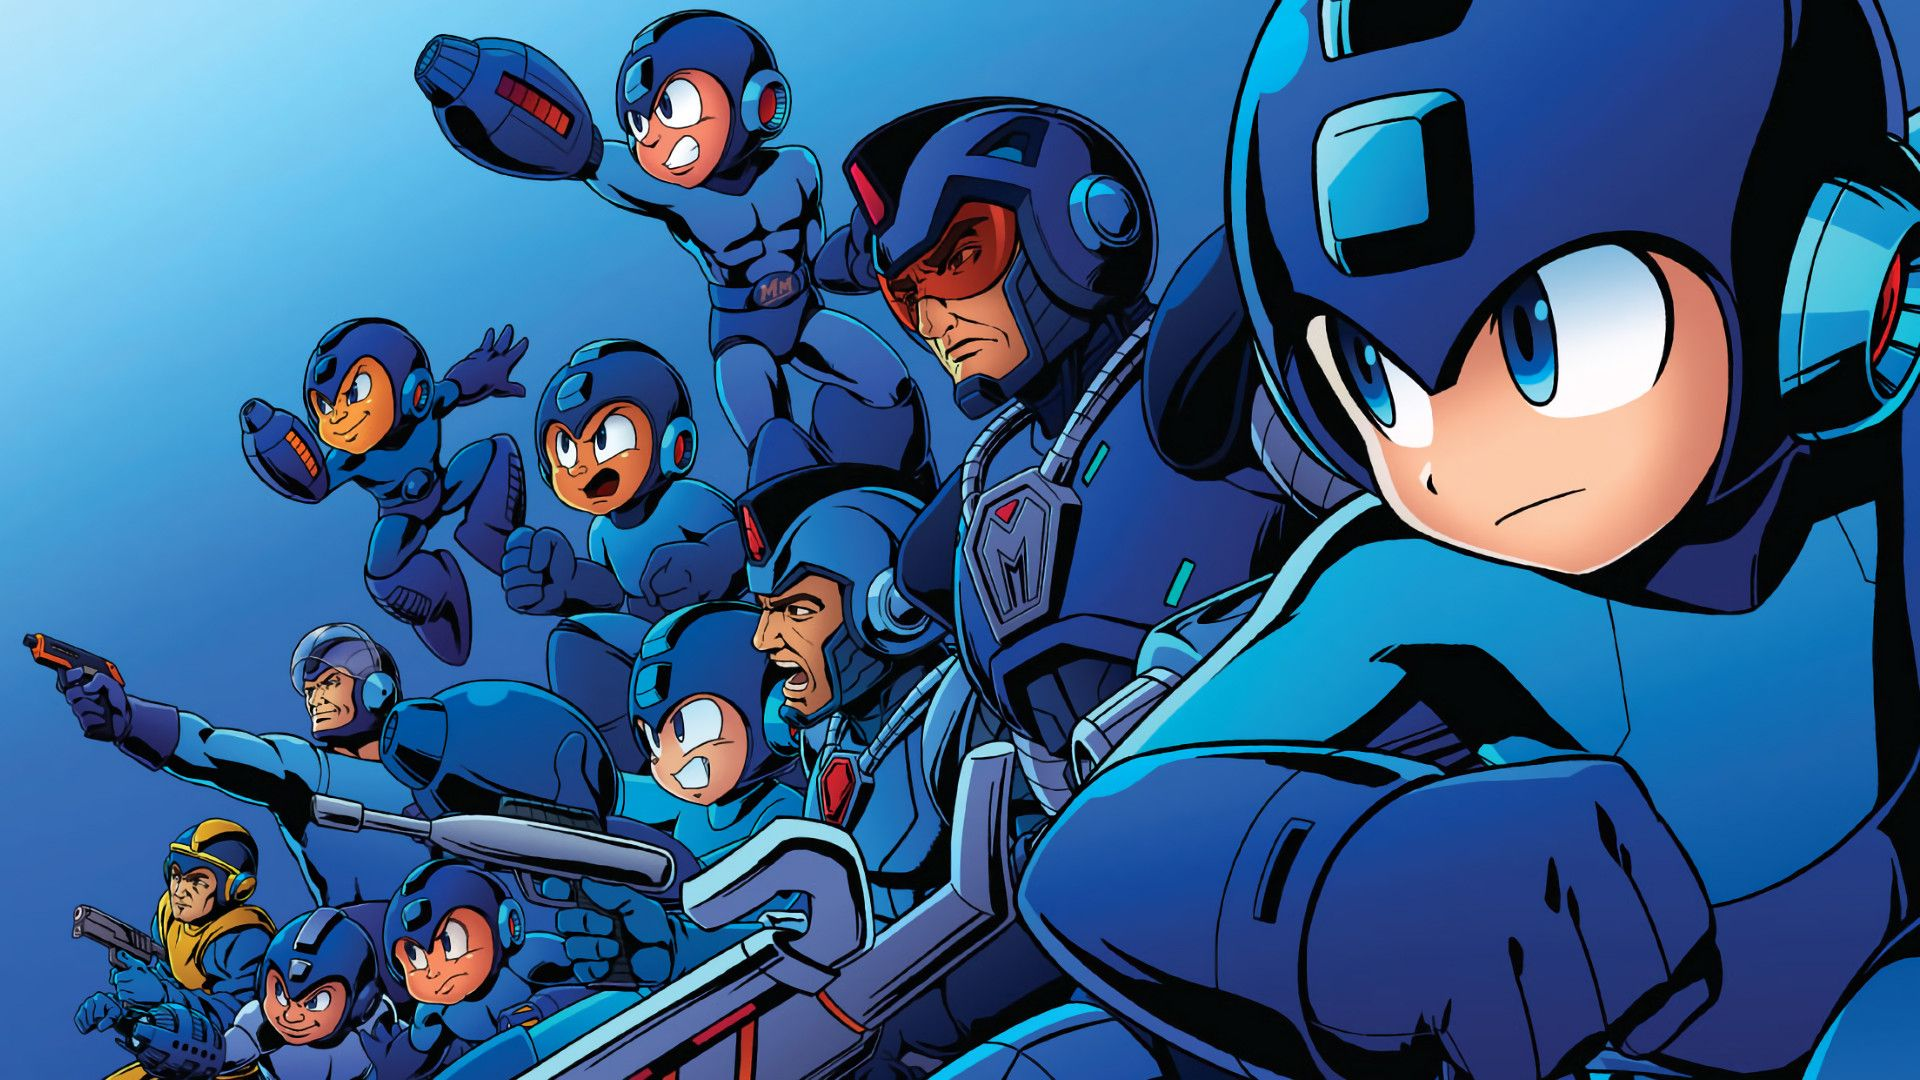 Mega Man X Wallpapers Top Free Mega Man X Backgrounds